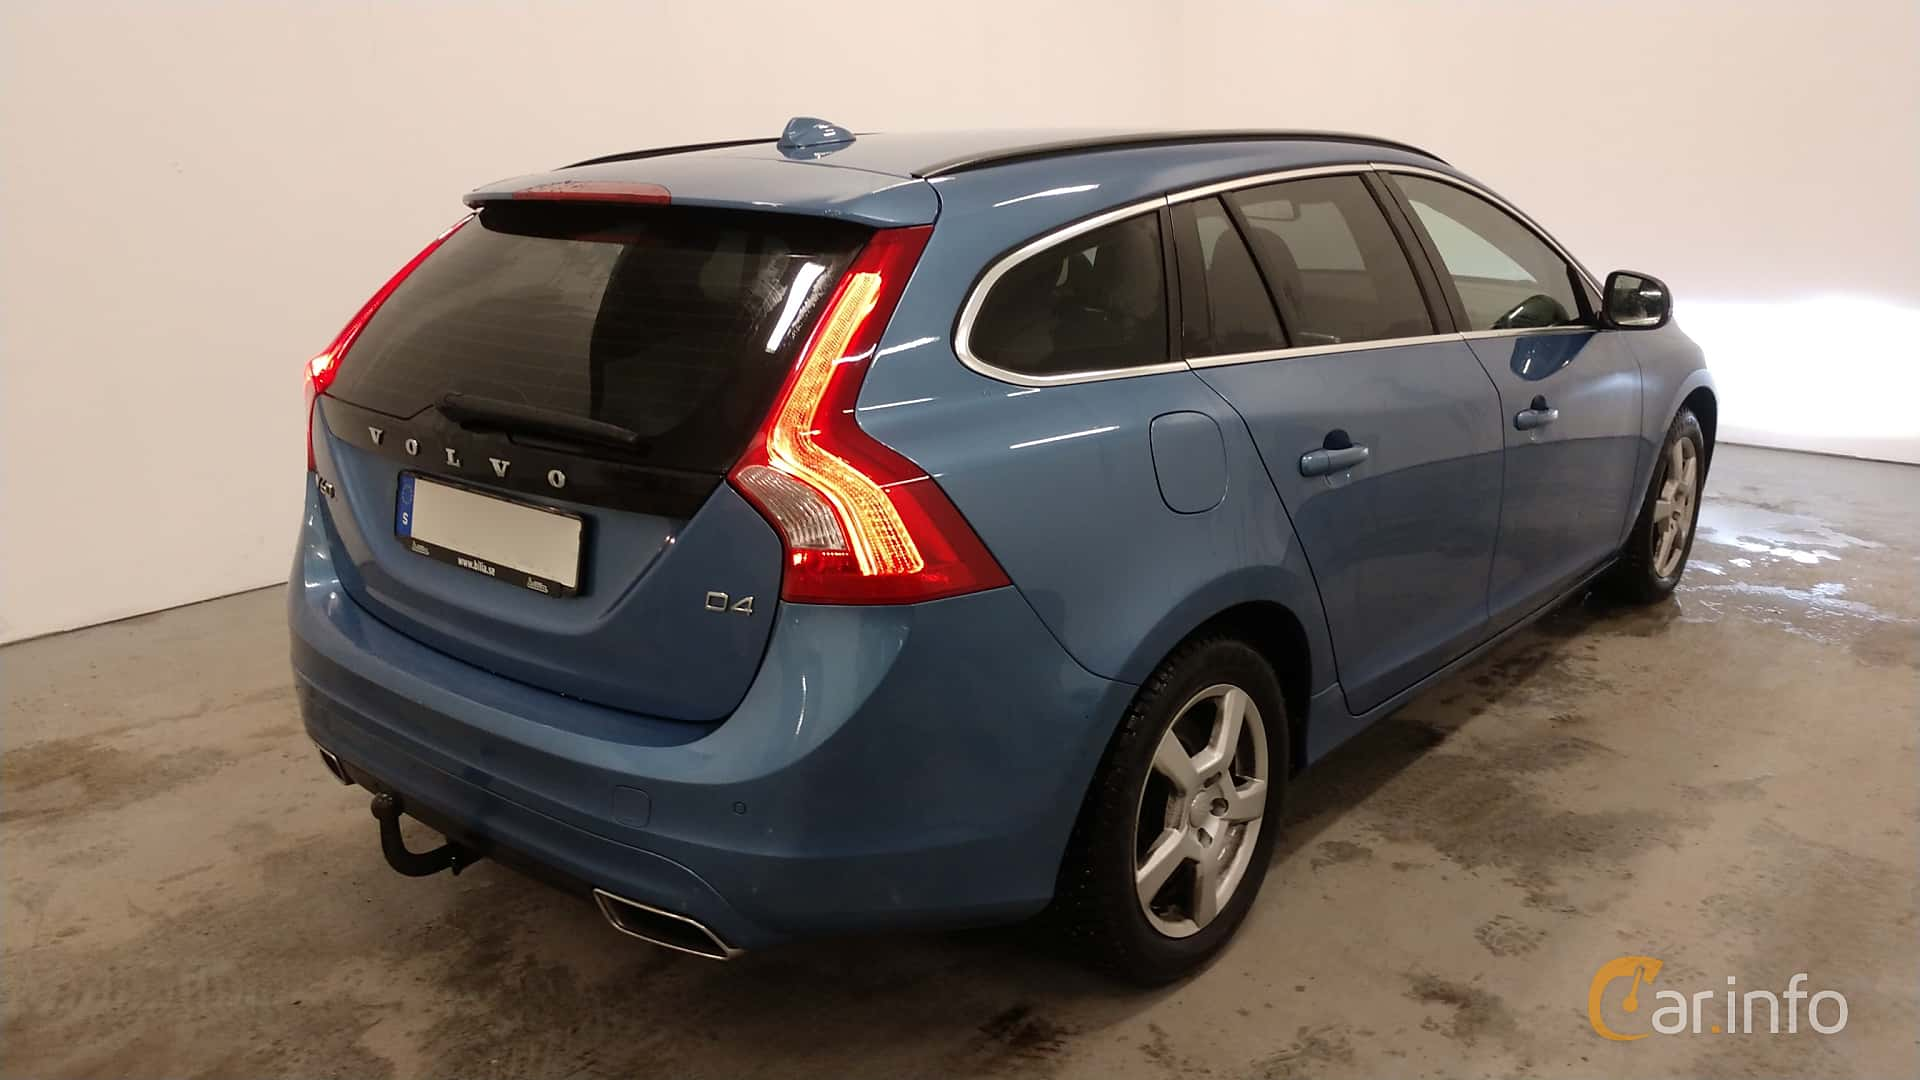 Volvo V60 D4 Manual, 181hp, 2015